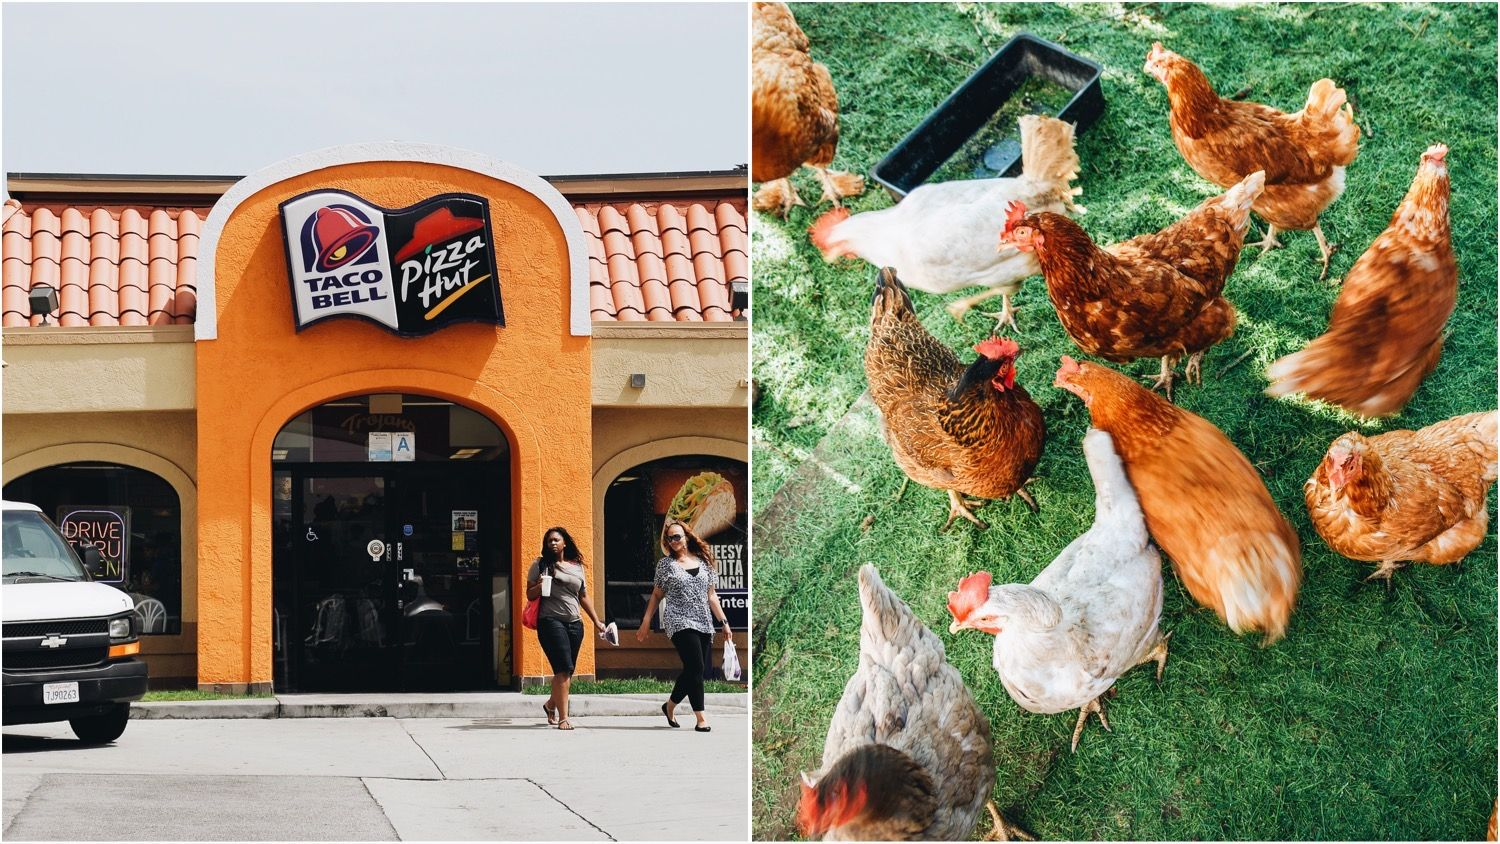 A combination Pizza Hut and Taco Bell restaurant alongside an image of cage-free hens